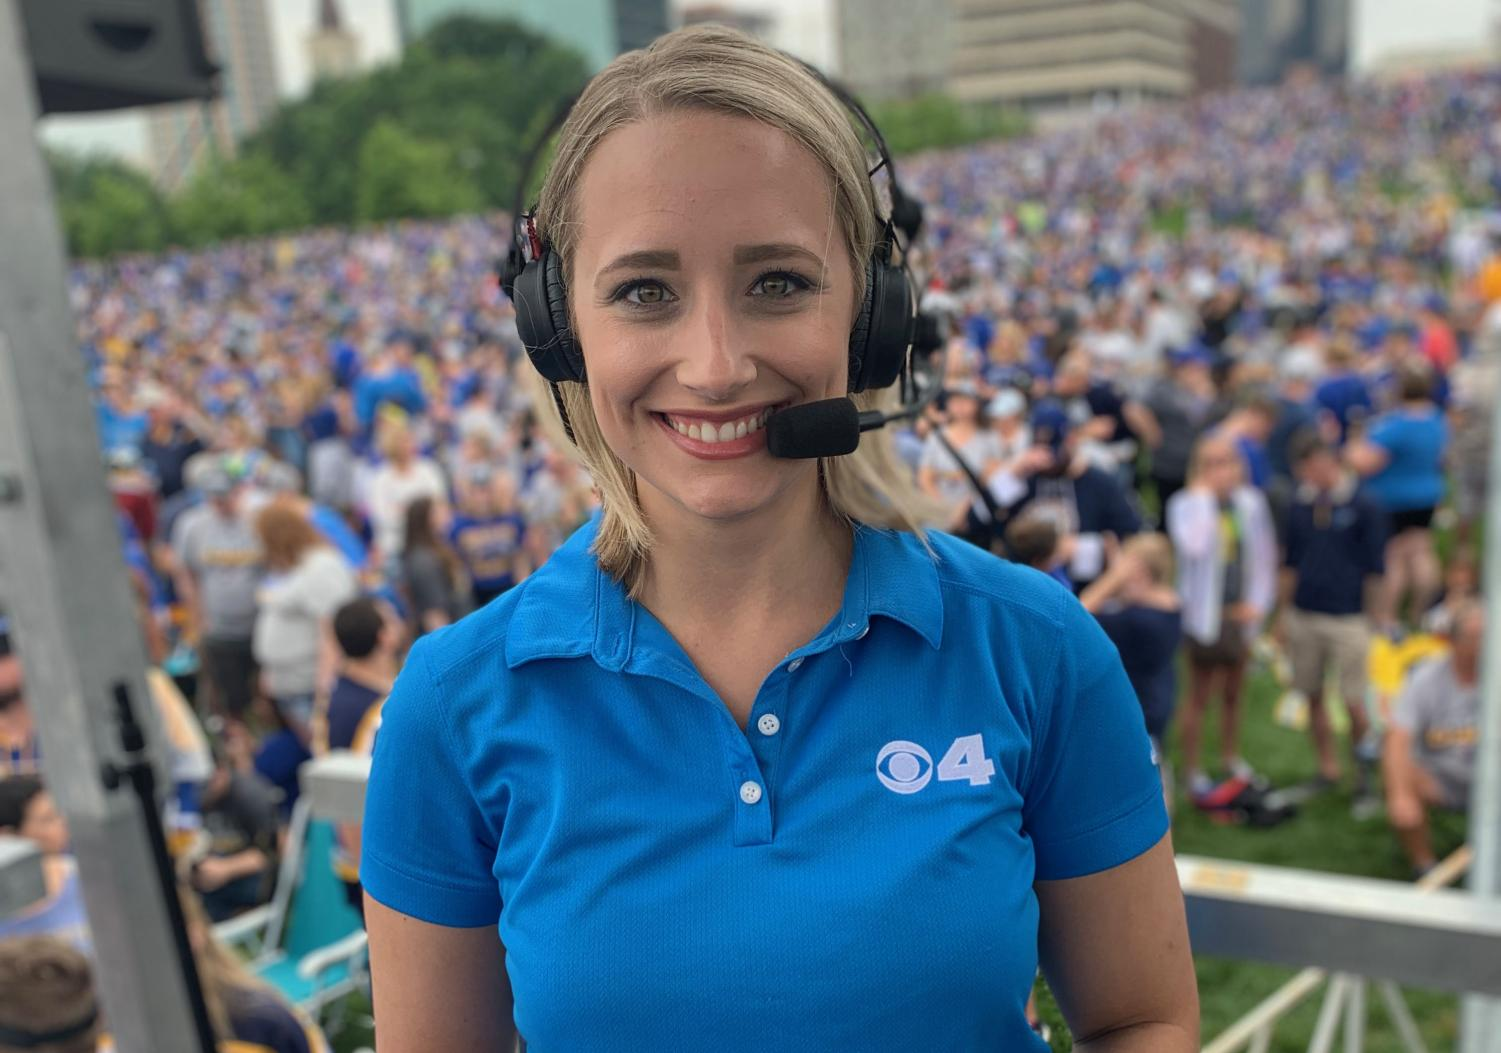 """Standing on The Arch grounds, Kim St. Onge covers the St. Louis Blues rally after winning the Stanley Cup. St. Onge wore a headset to hear the anchors in her ear. """"The crowd was so loud that day that even with the headset I could barely hear the show. I was on a stage in the middle of tens of thousands of people–pretty surreal! It was so cool to see the whole city come together to support the Blues. I'll forever think of that day as one of the coolest things I've ever done,"""" St. Onge said."""